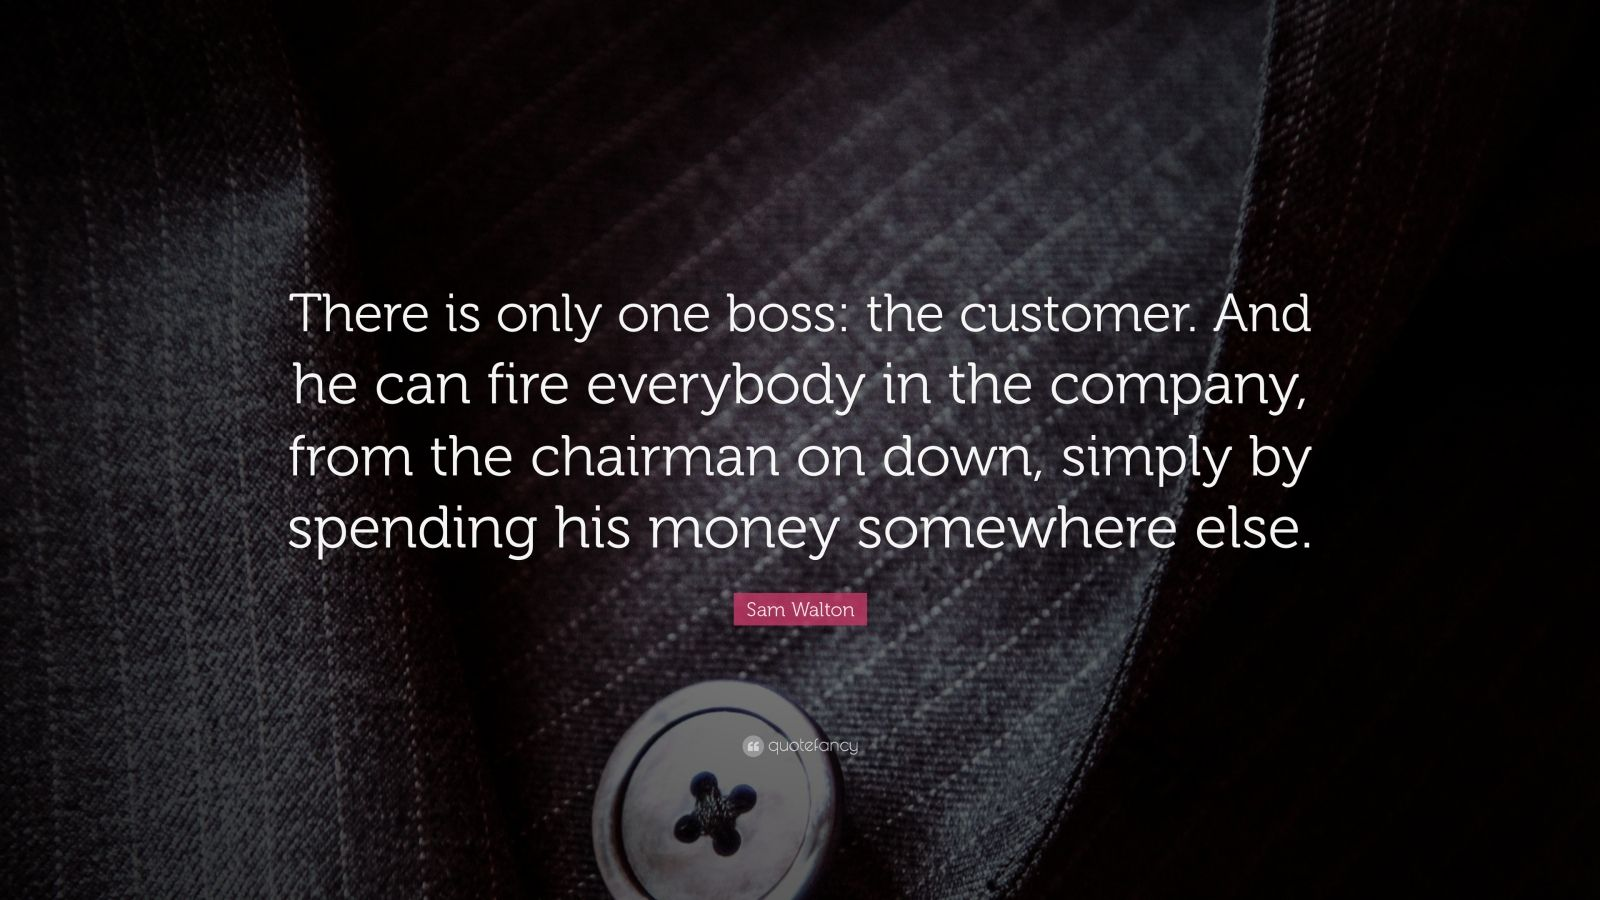 """Sam Walton Quote: """"There is only one boss: the customer. And he can fire everybody in the company, from the chairman on down, simply by spending his money somewhere else."""""""